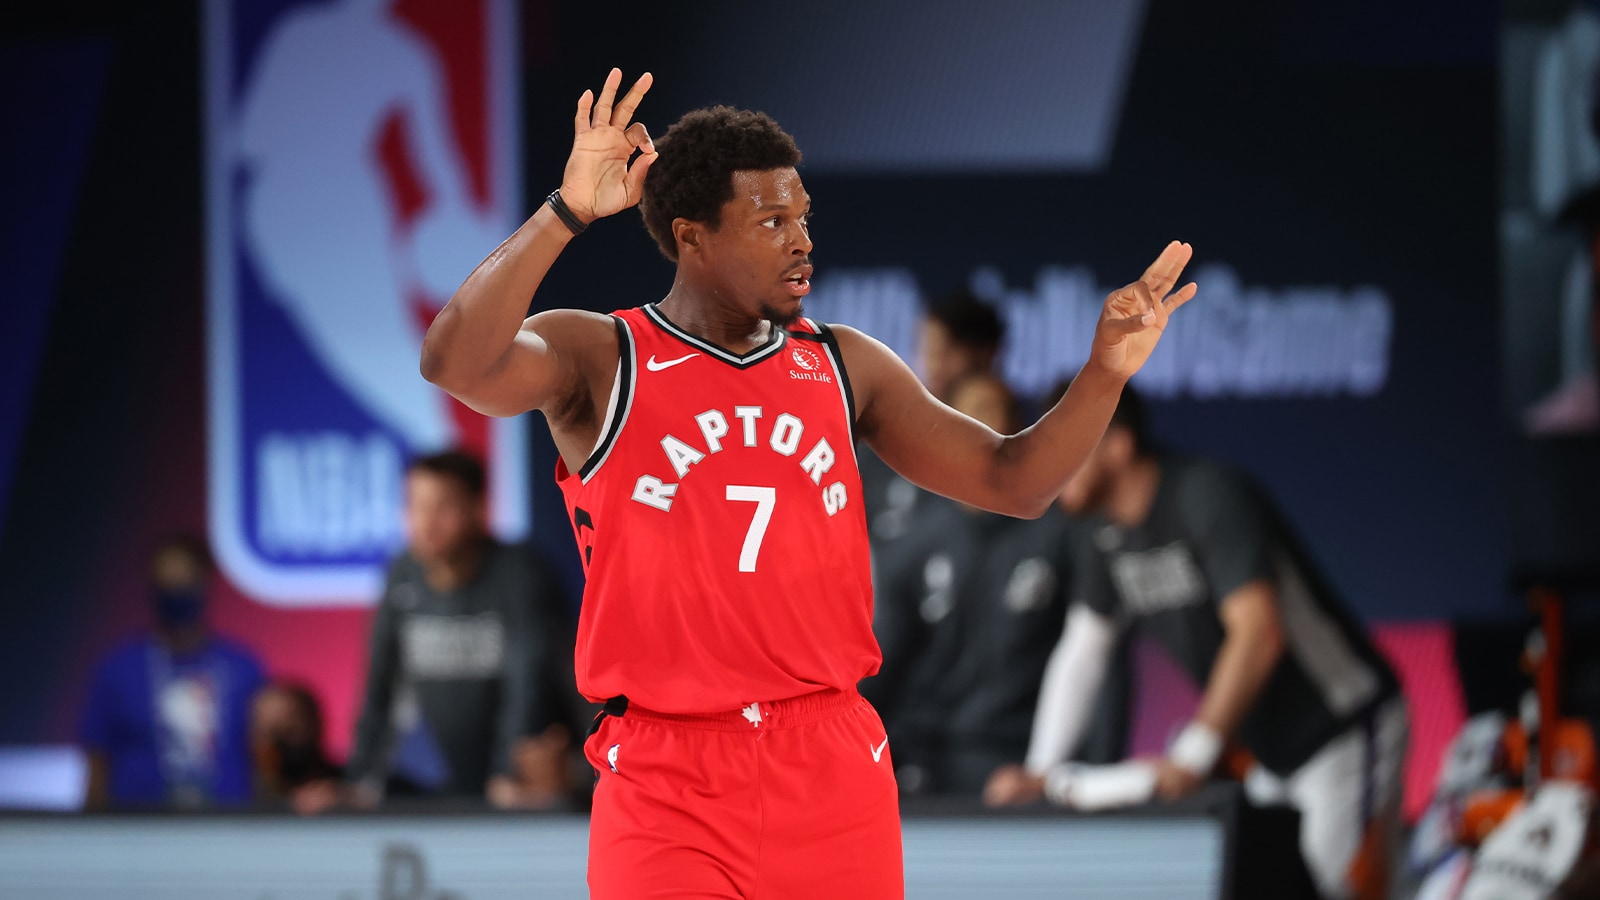 Defending Champion Kyle Lowry in action for the Raptors